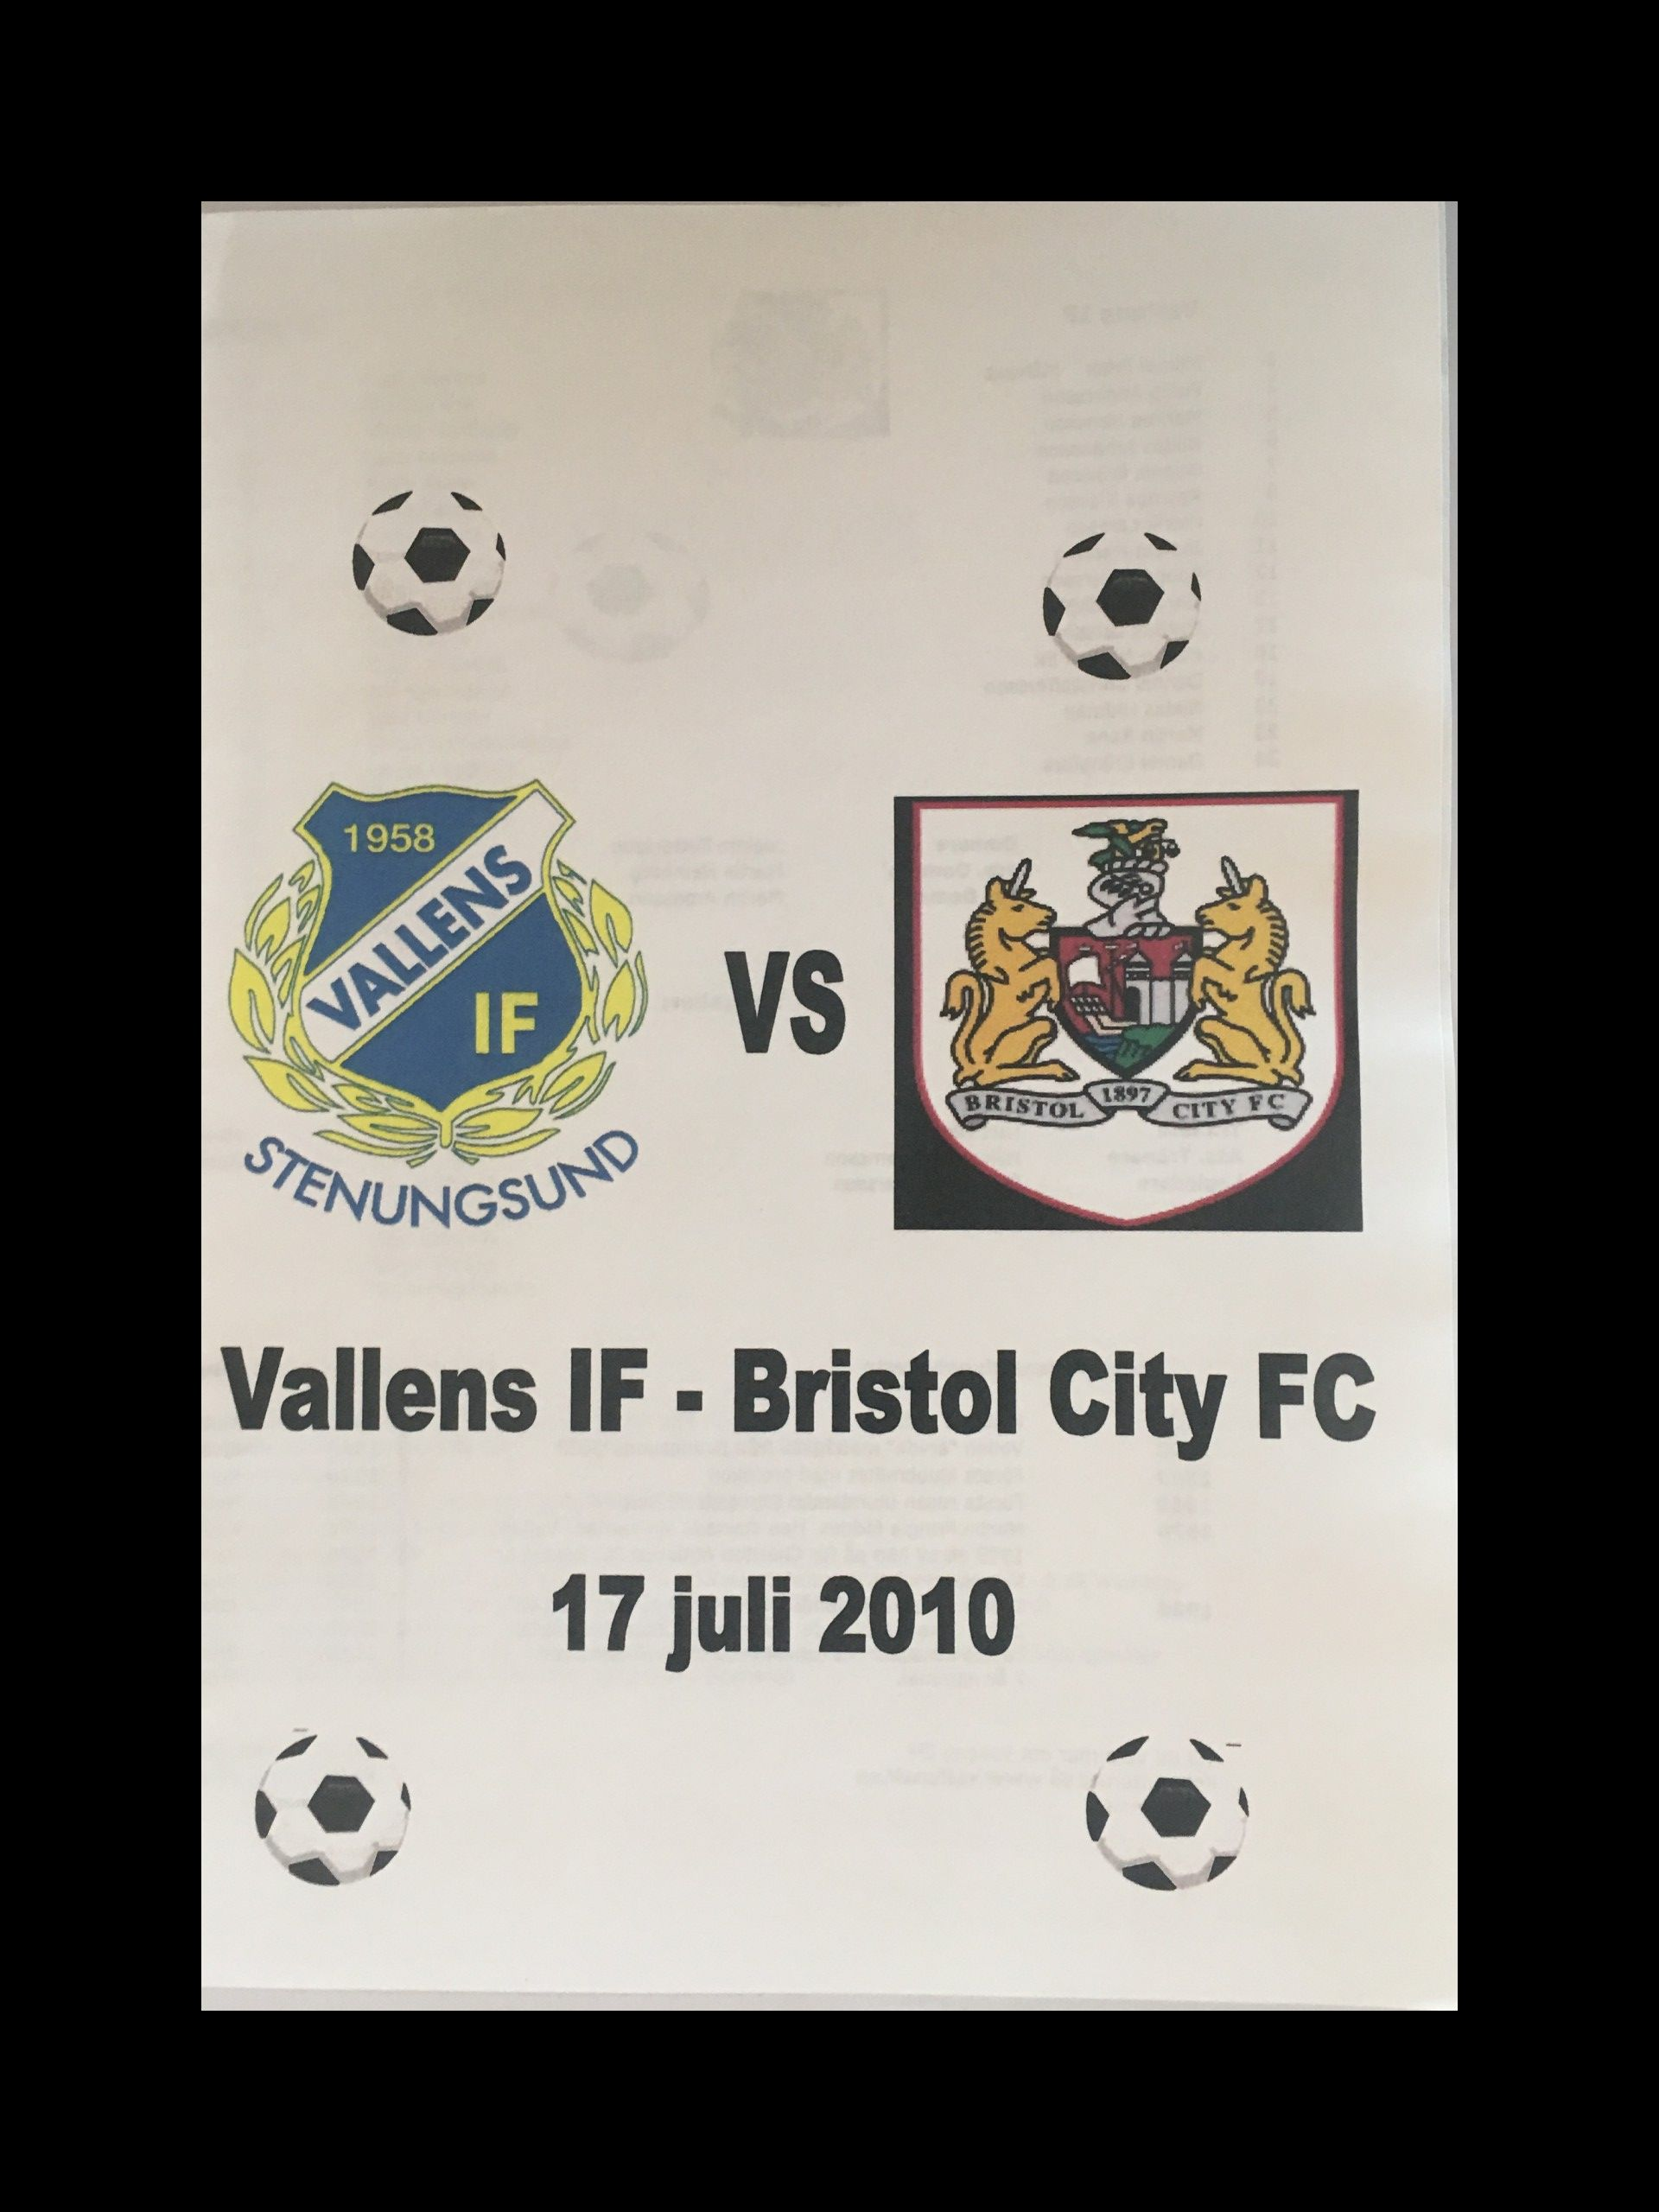 Vallens IF v Bristol City 17-07-2010 Programme